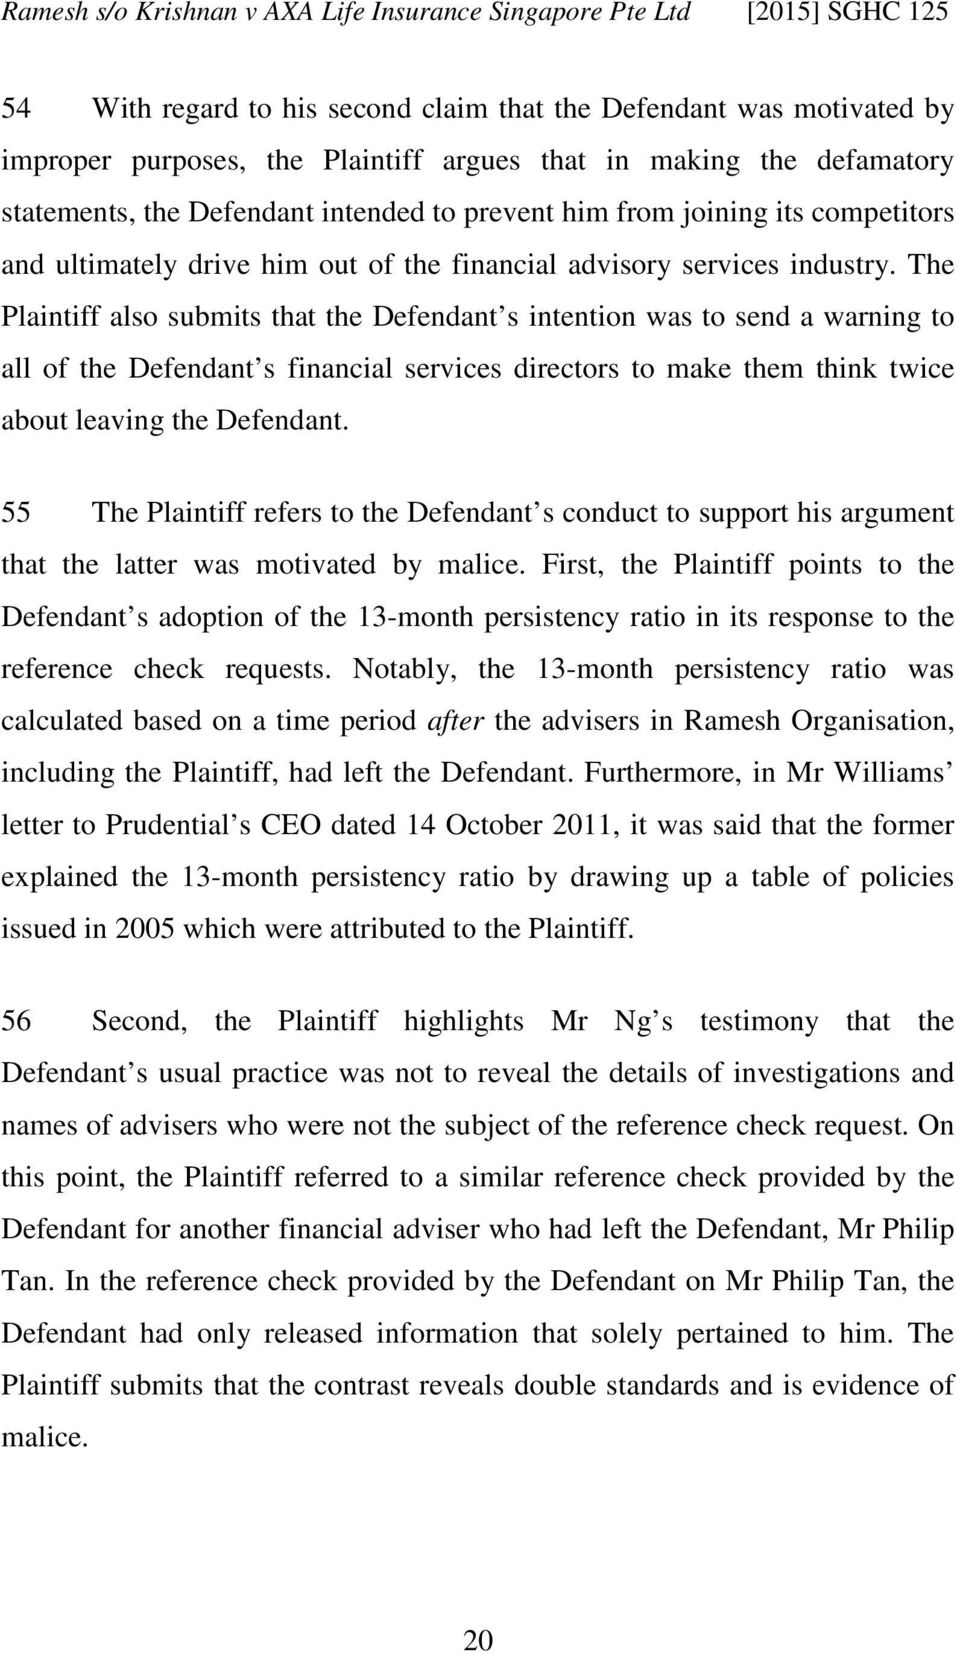 The Plaintiff also submits that the Defendant s intention was to send a warning to all of the Defendant s financial services directors to make them think twice about leaving the Defendant.